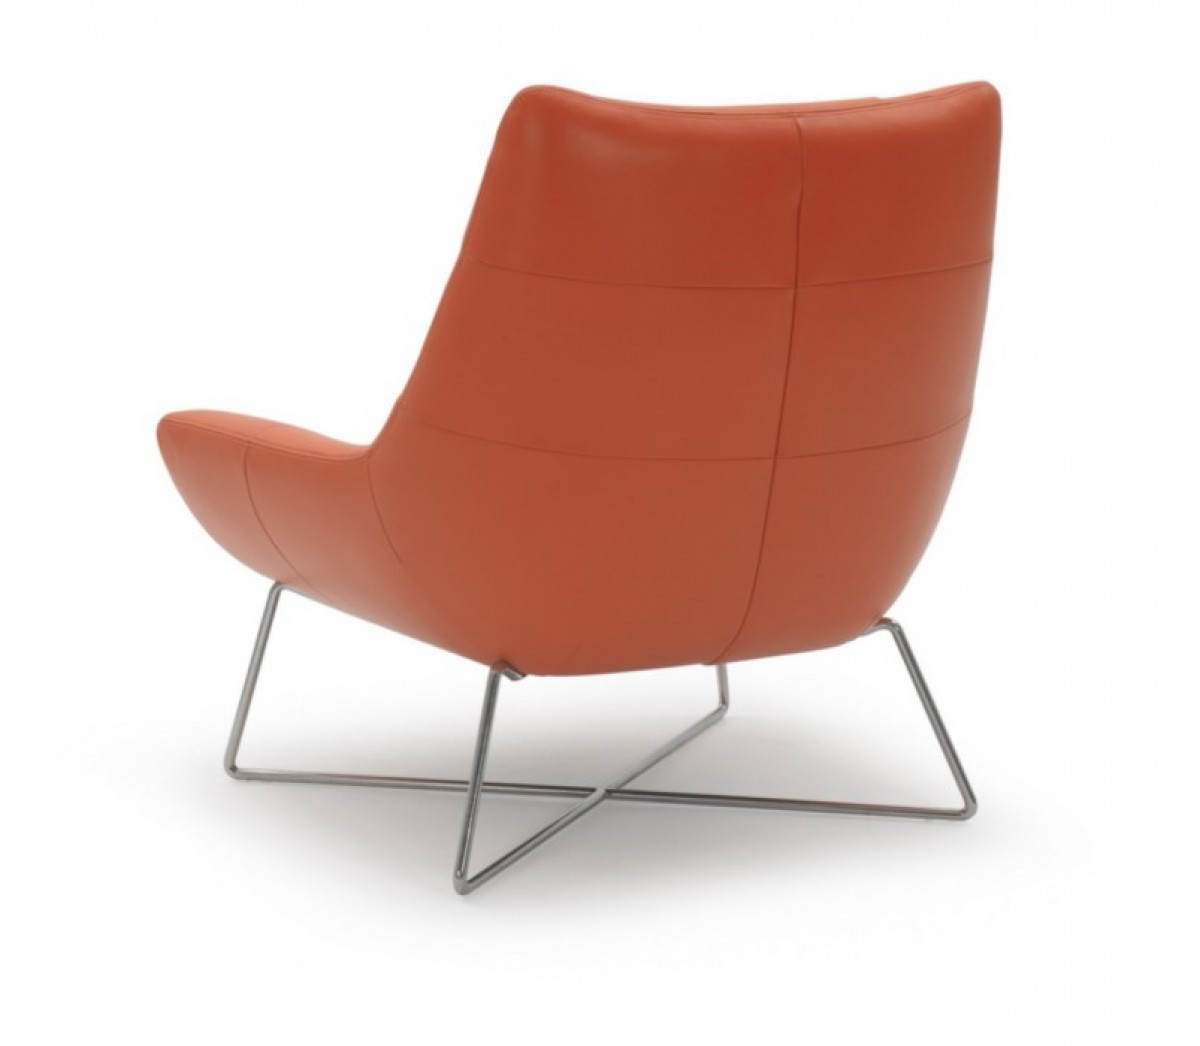 Modern Orange Leather and Stainless Steel Lounge Chair - Click Image to Close